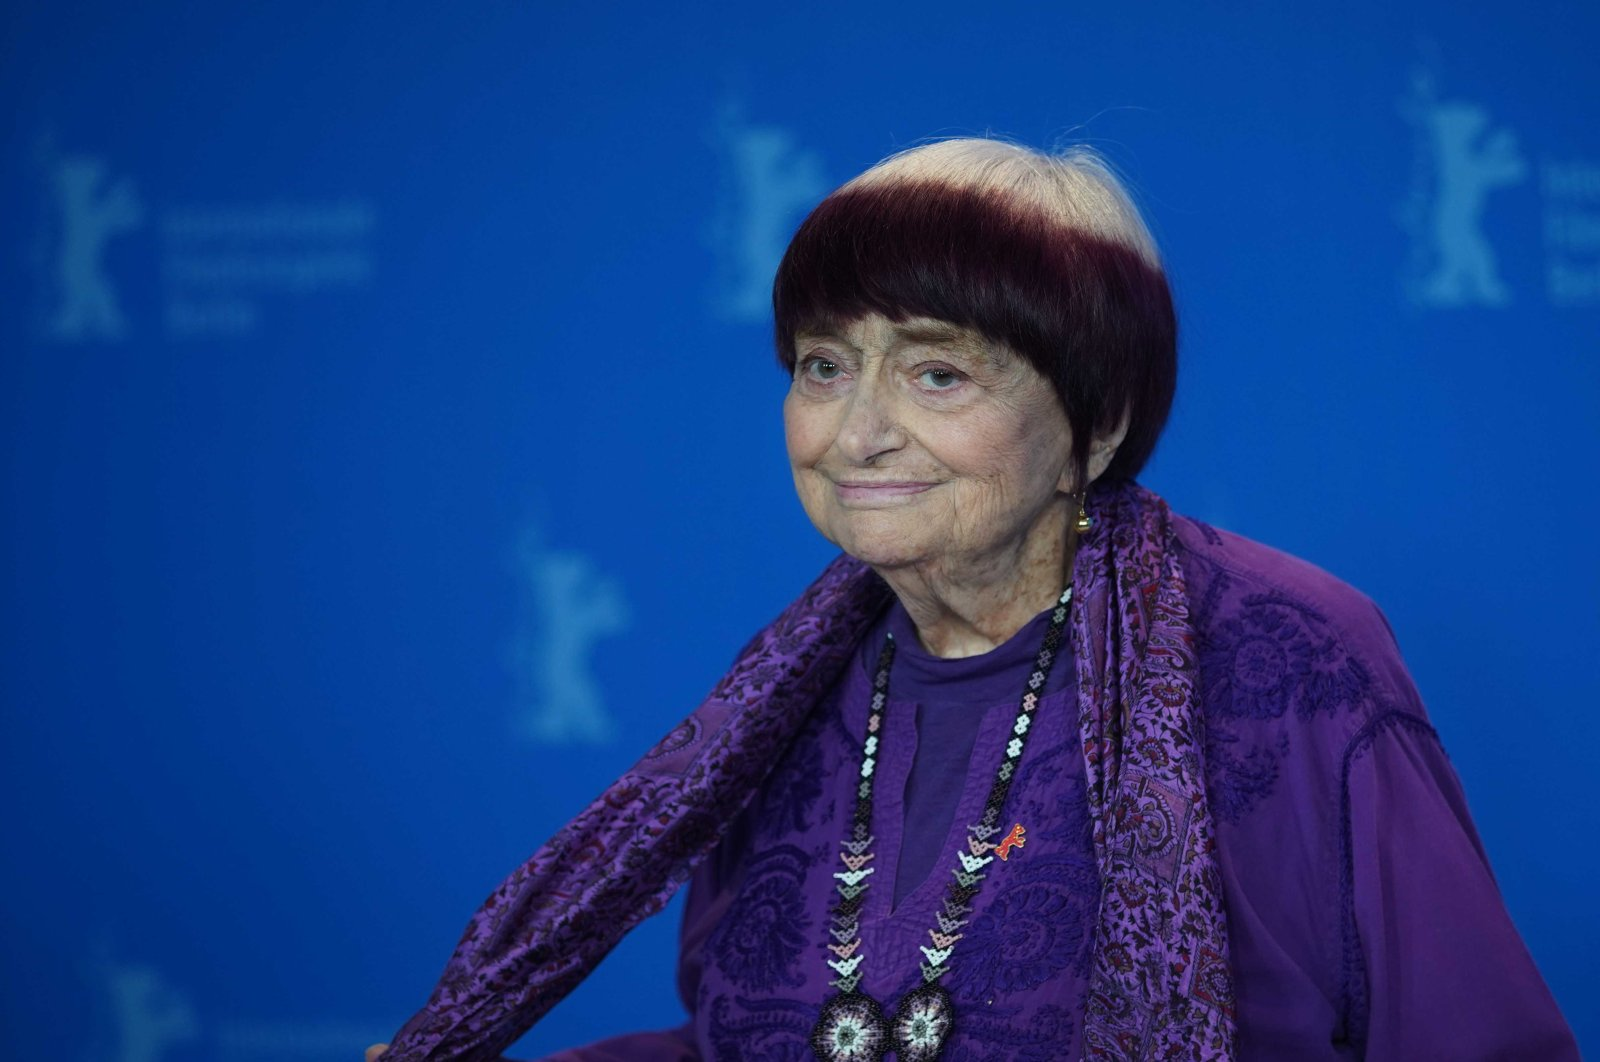 Agnes Varda attends the Varda By Agnes photocall during the 69th Berlinale Festival Berlin at Grand Hyatt Hotel on February 13, 2019 in Berlin, Germany. (Shutterstock Photo)